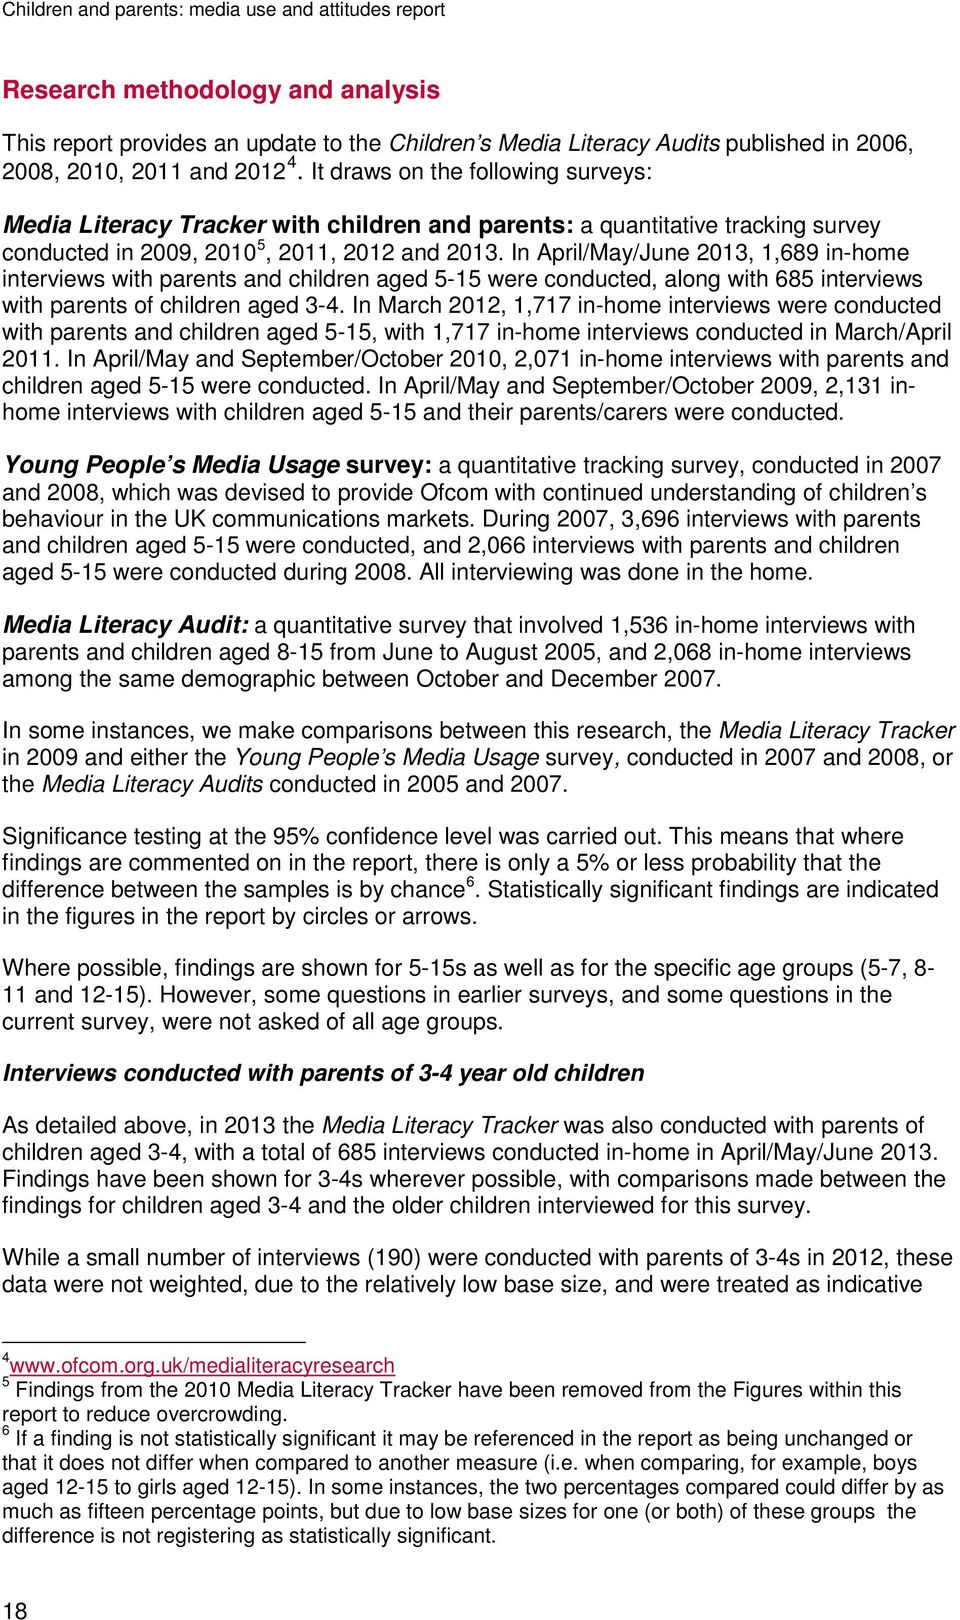 In April/May/June, 1,9 in-home interviews with parents and children aged -1 were conducted, along with interviews with parents of children aged 3-4.